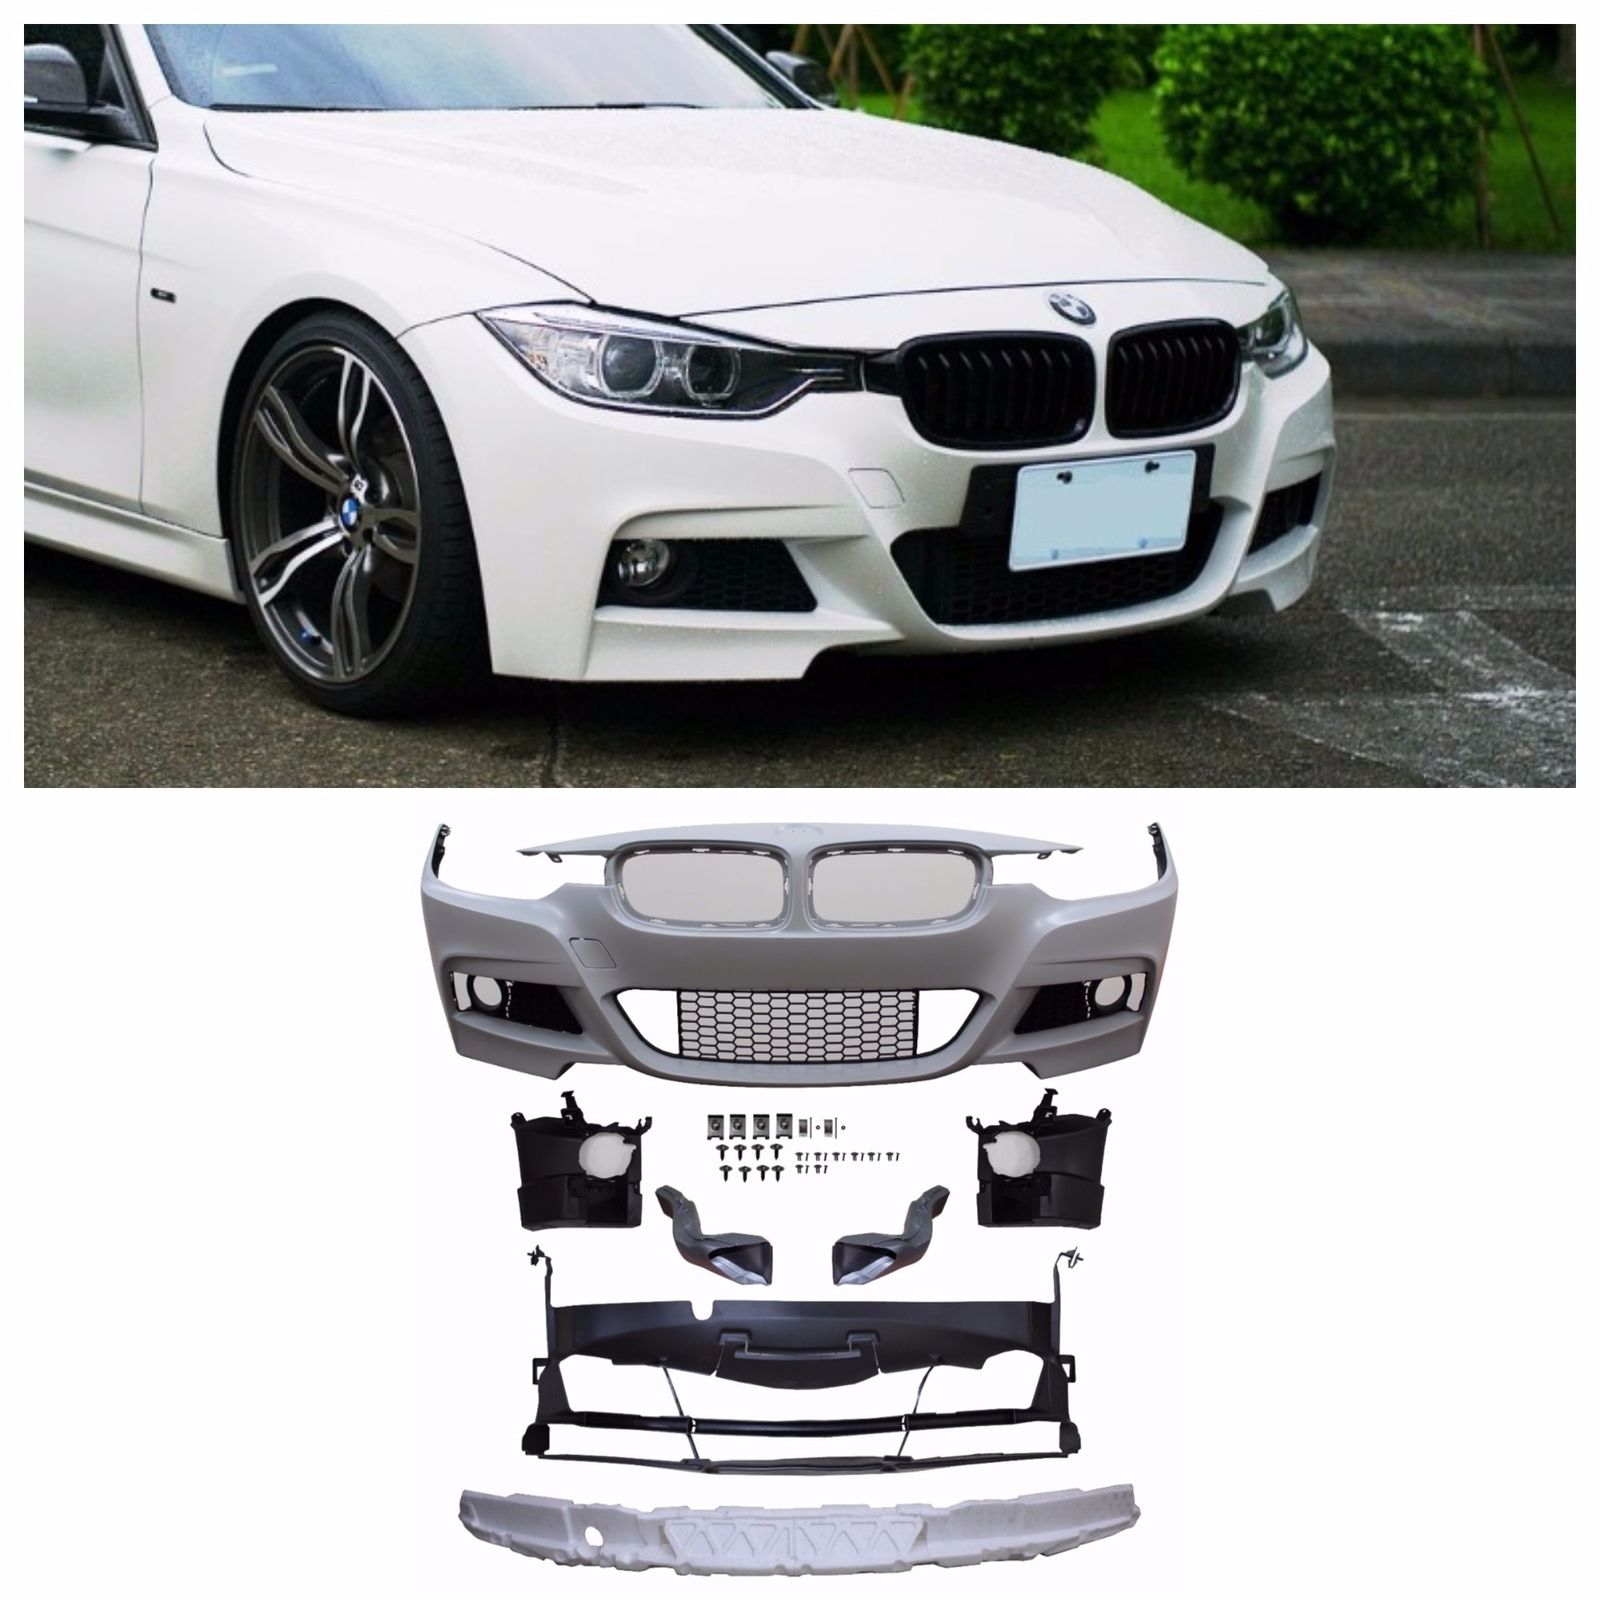 Awesome 12 16 F30 M Sport Mtech Front Bumper No Pdc For All Bmw F30